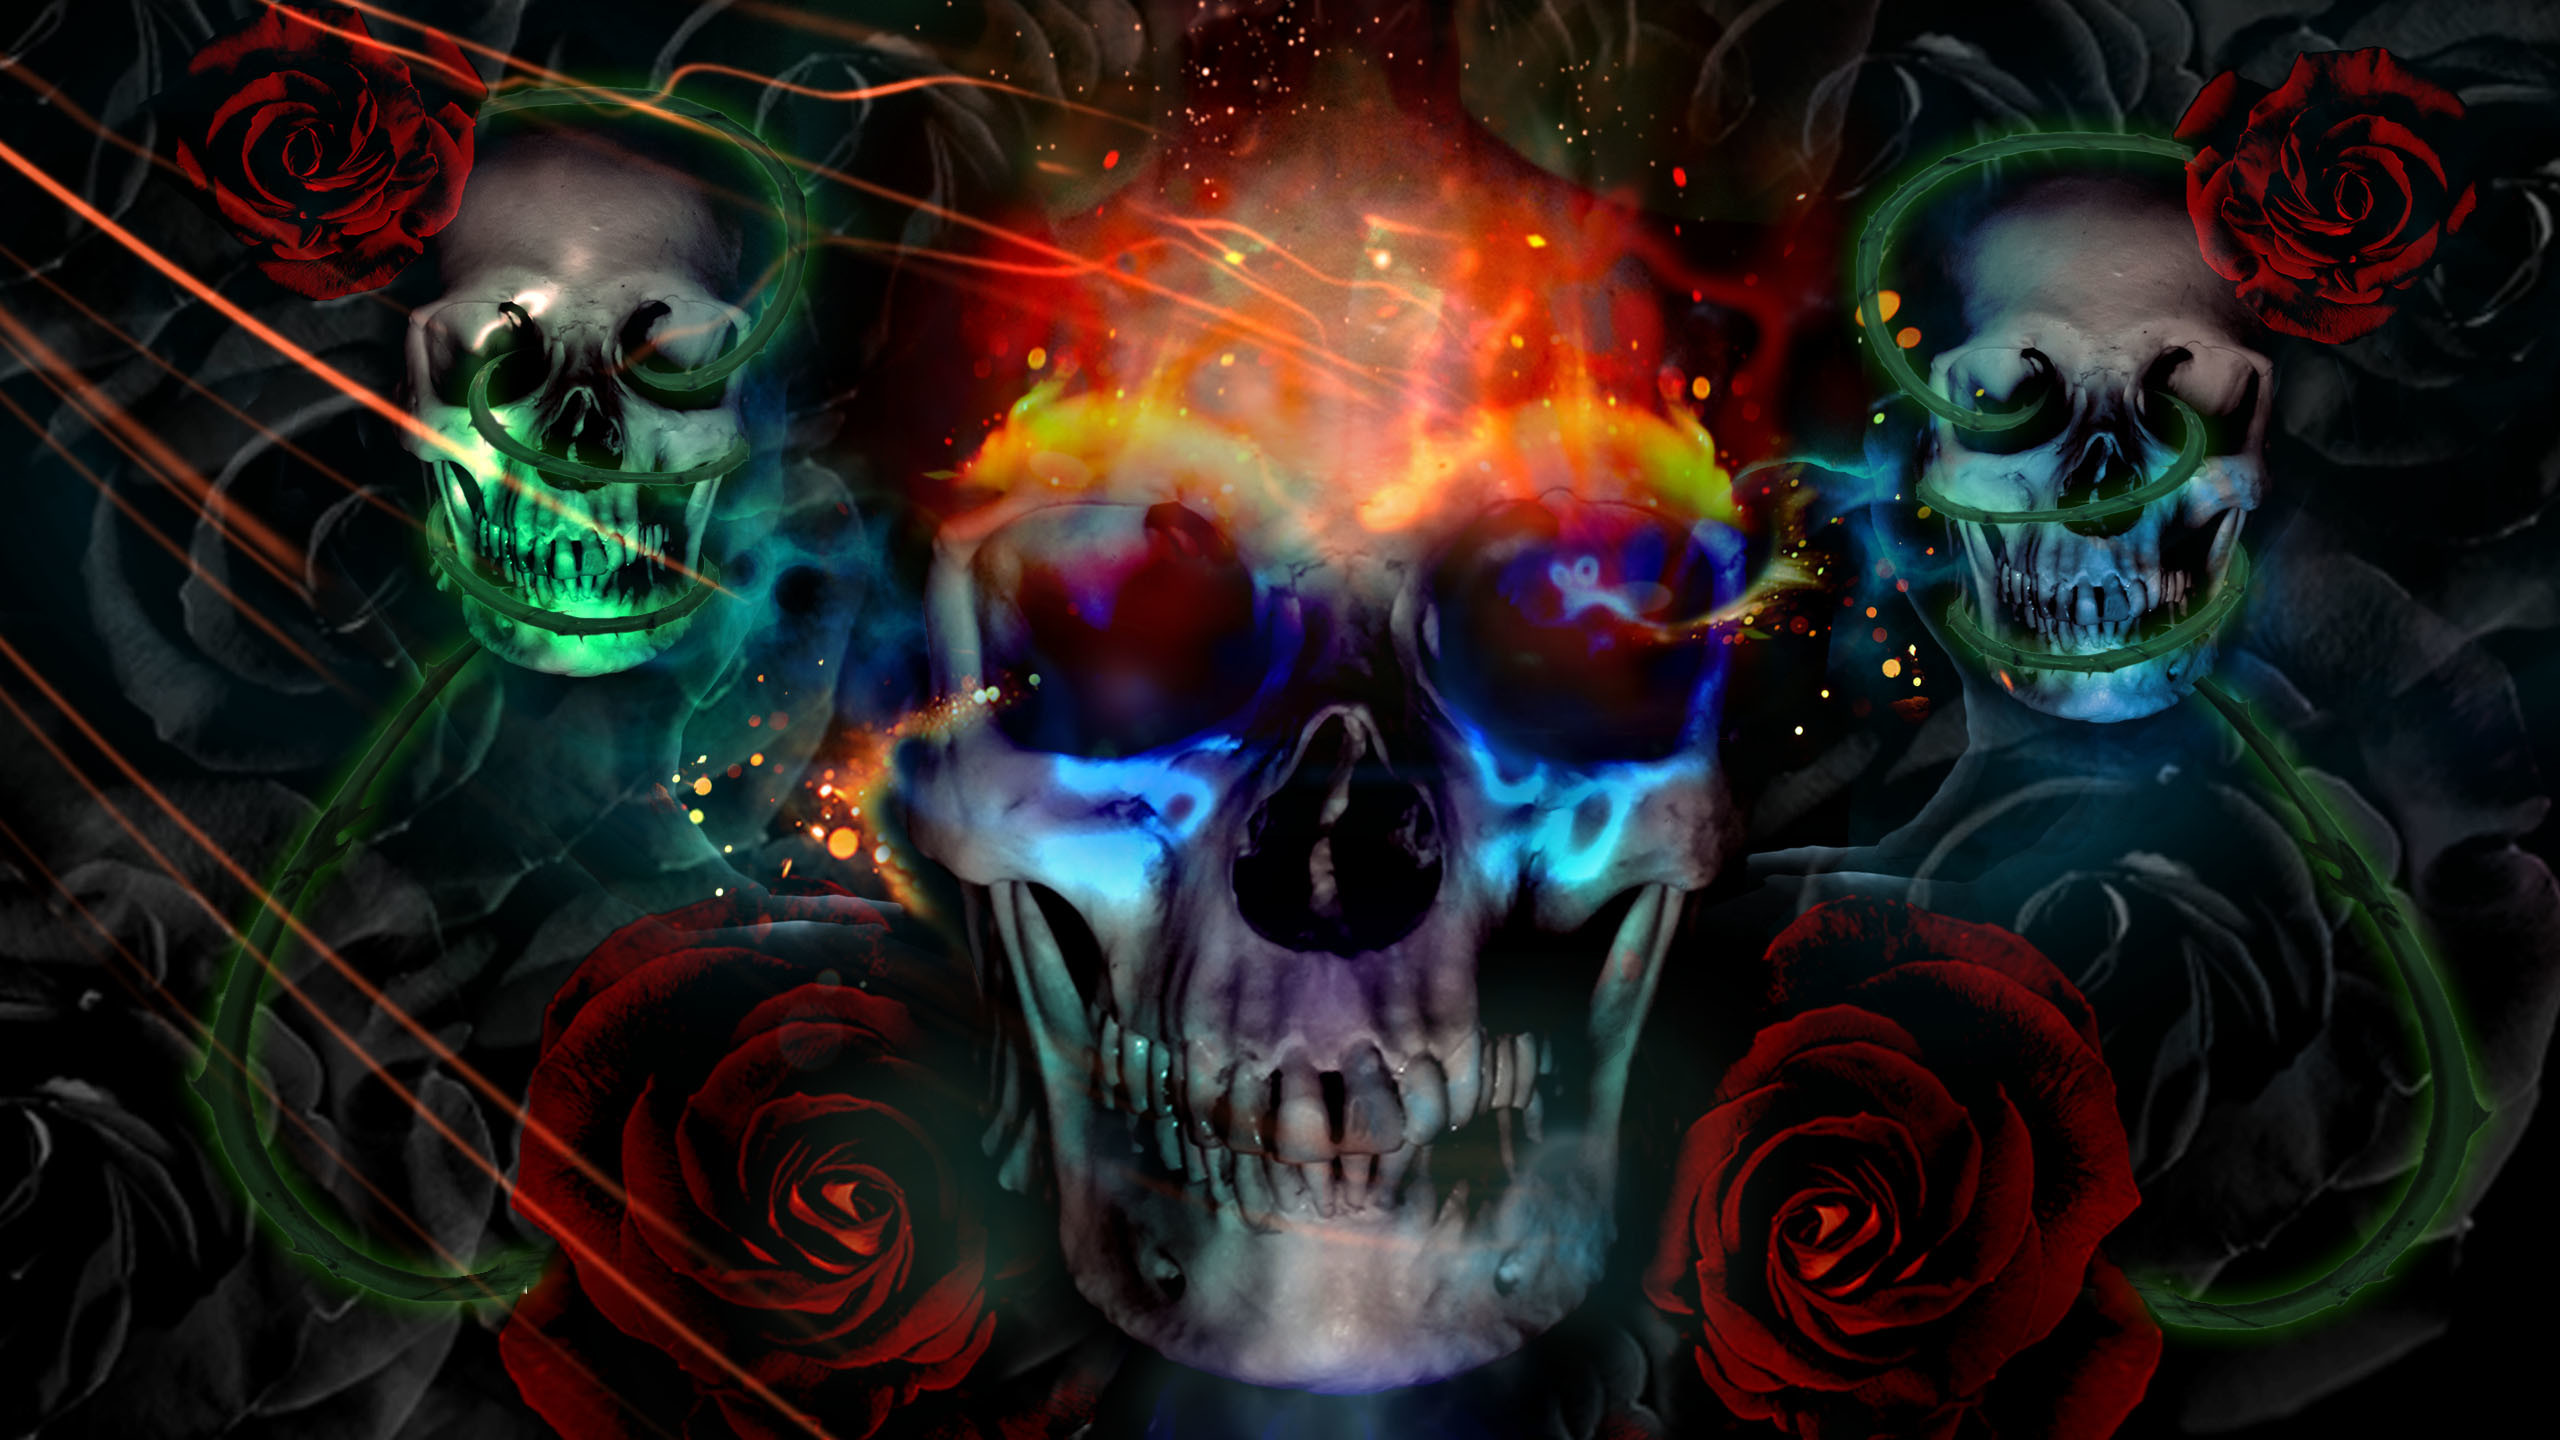 Pin by zombie tophat on Skulls, Skeletons and the Grim Reaper   Pinterest    Grim reaper and Skeletons